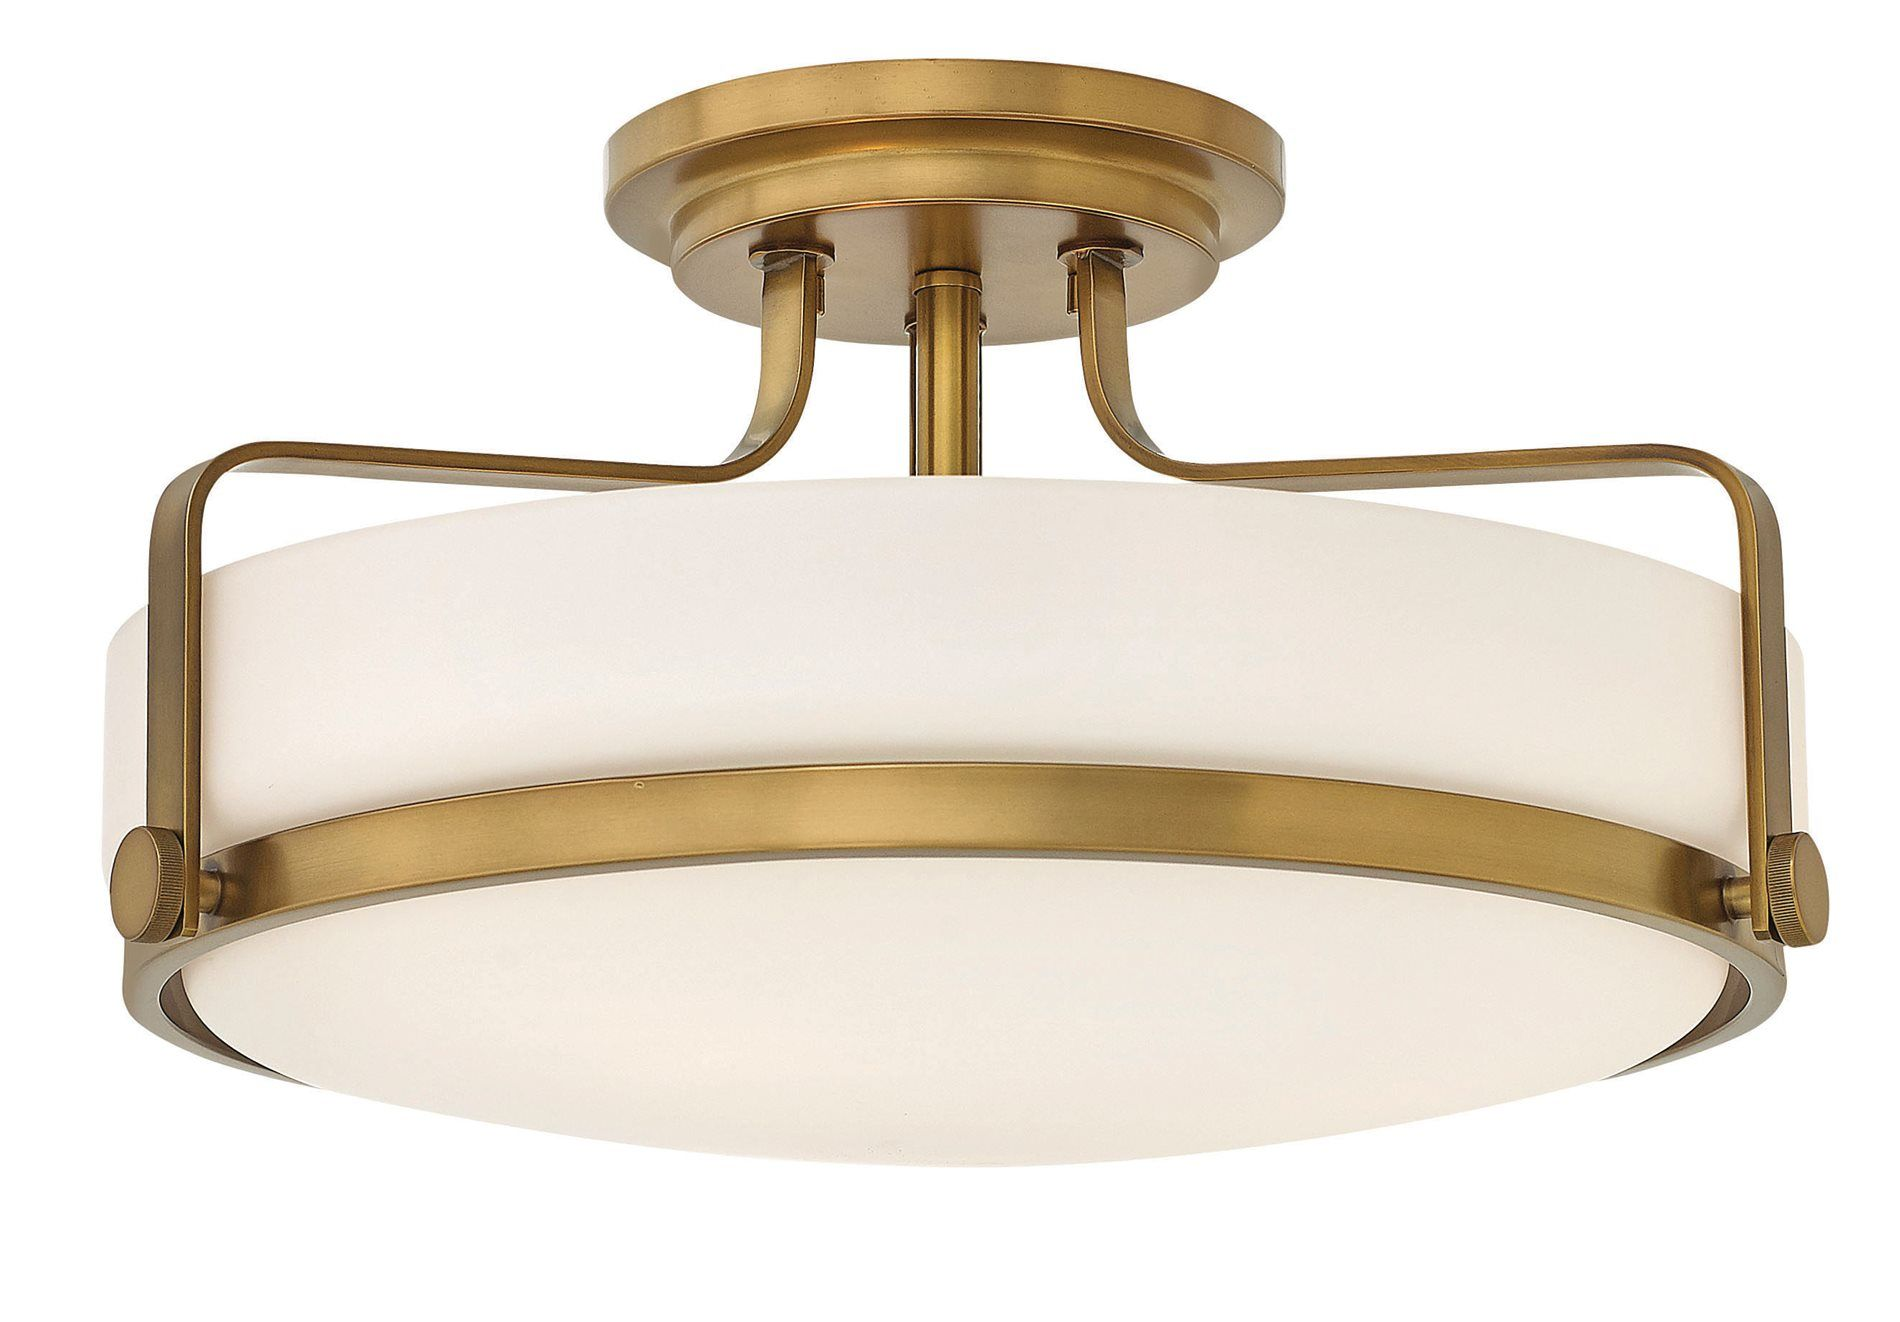 Outdoor lamps lighting and ceiling fans - Light Fixtures Lamps Ceiling Lights Outdoor Lighting Ceiling Fans